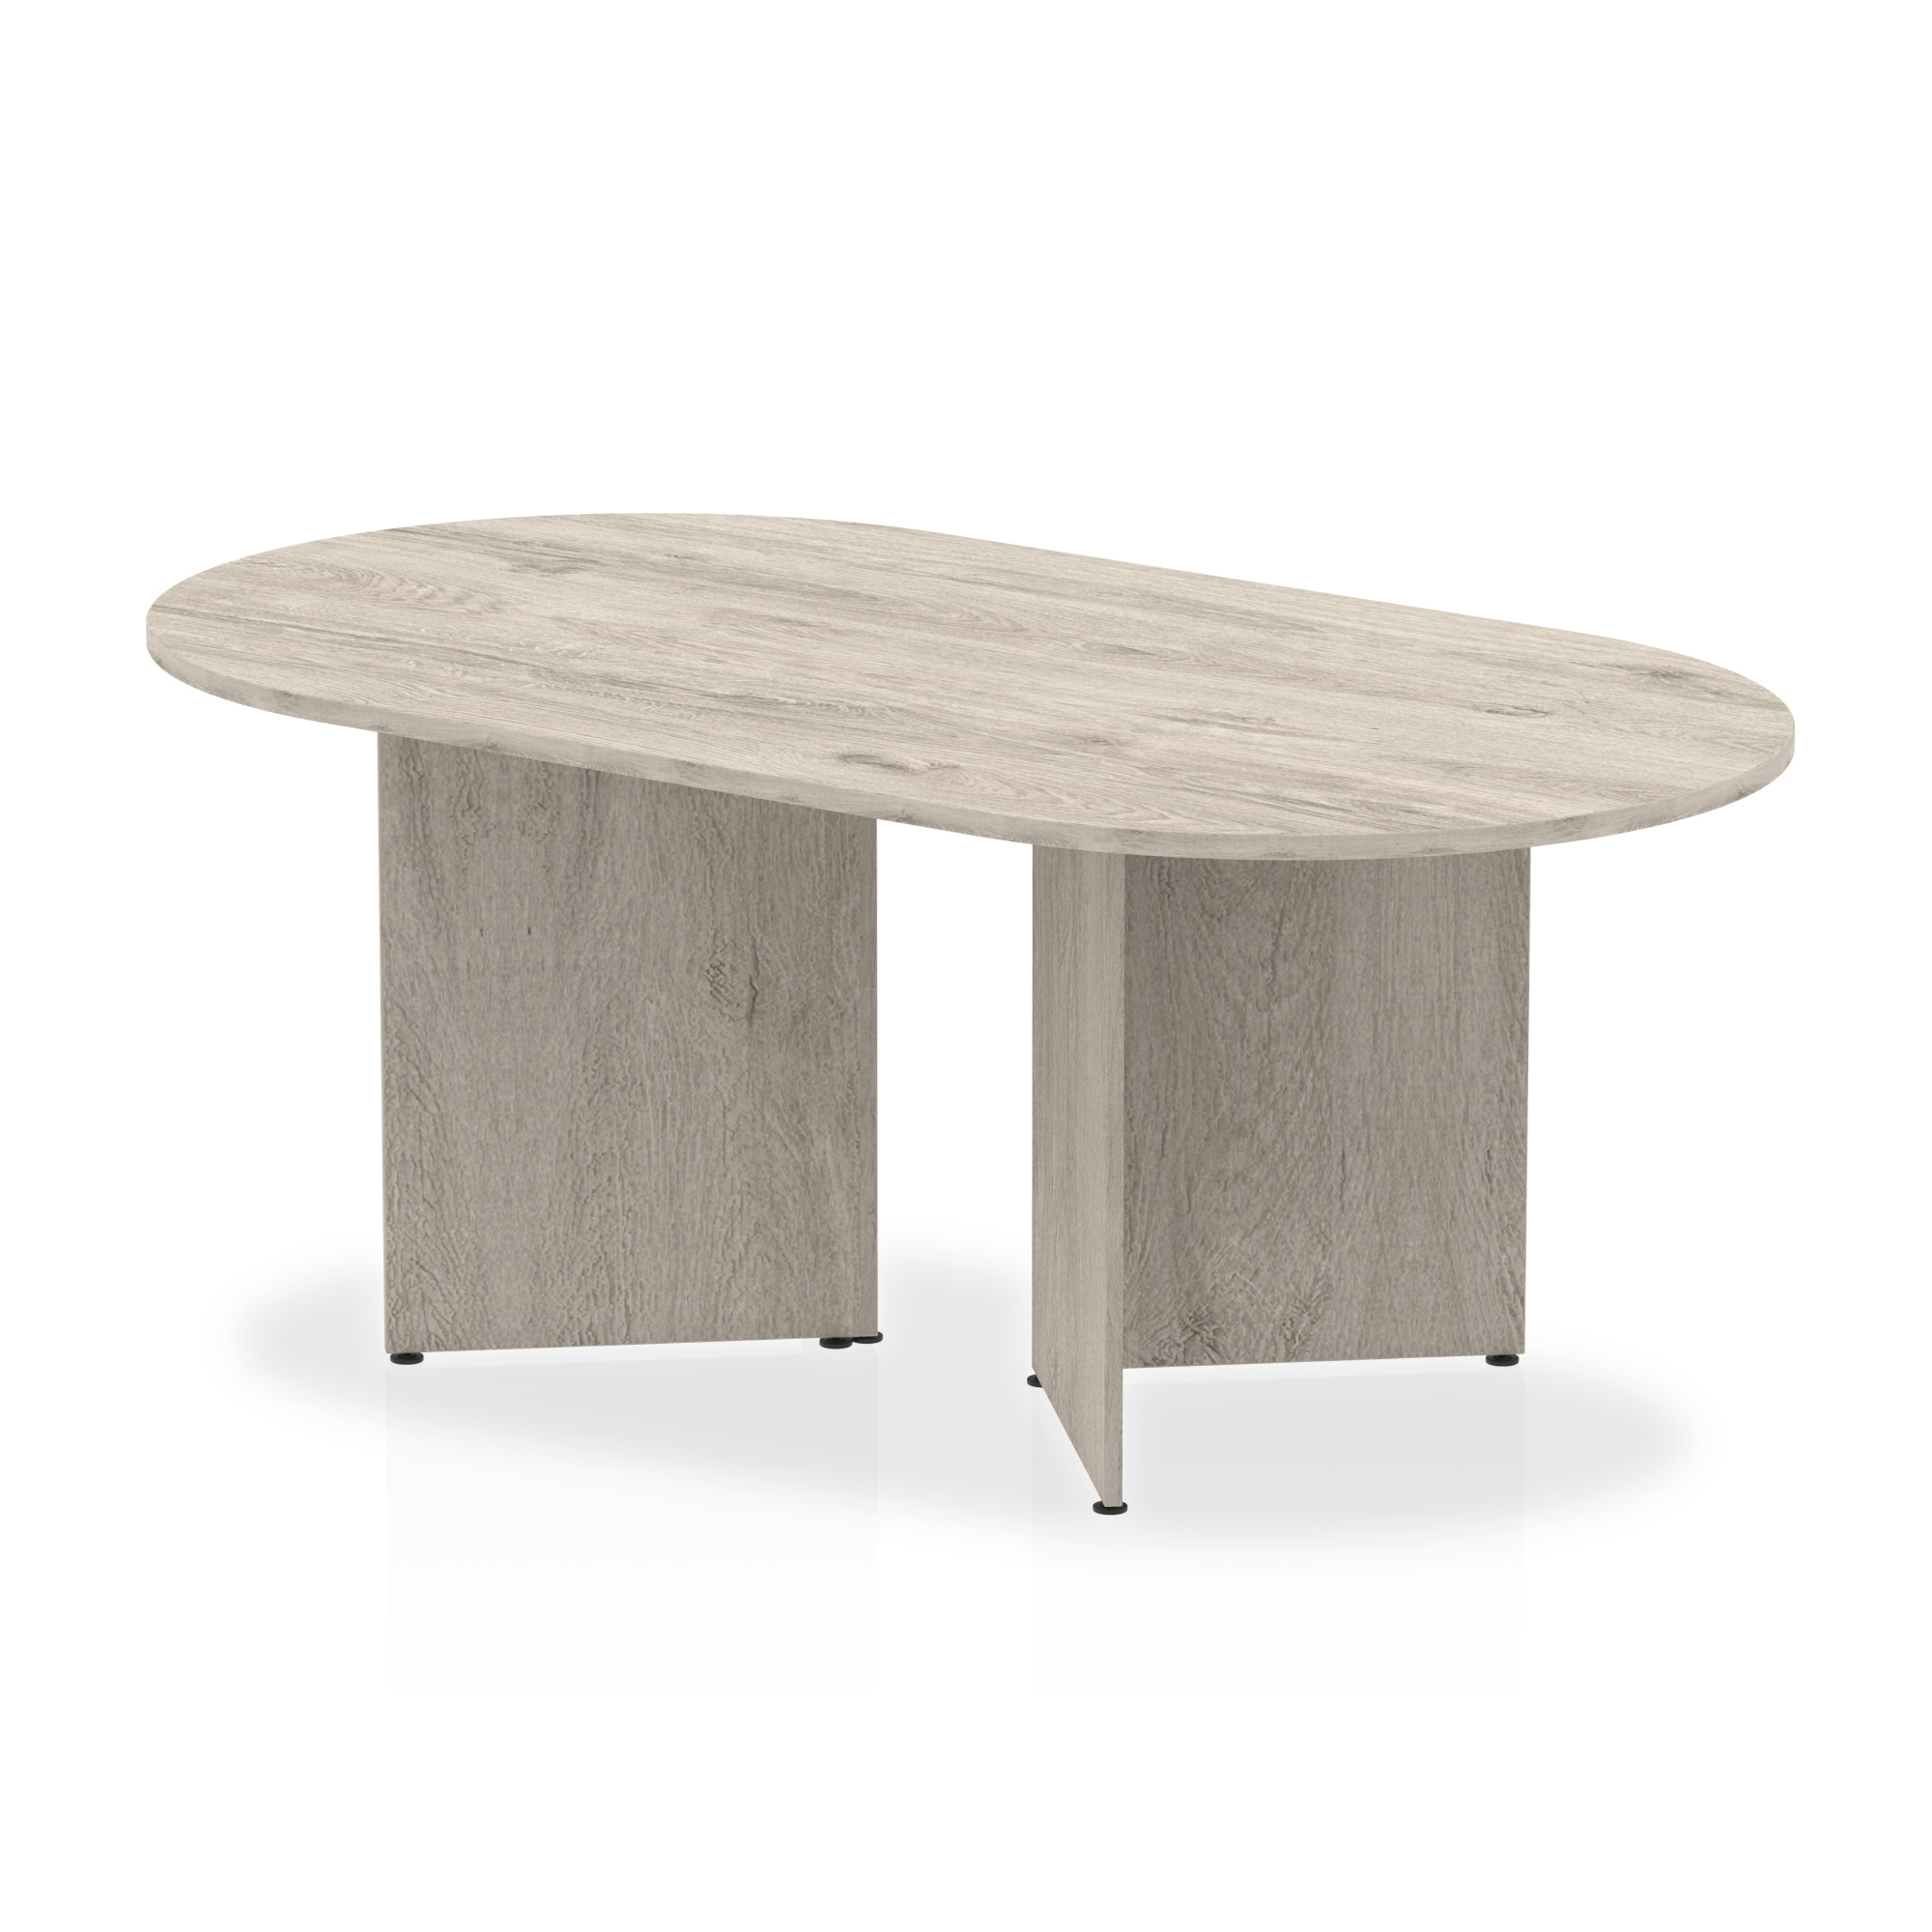 Trexus Boardroom Table Arrowhead 1800x1200x730mm Grey Oak